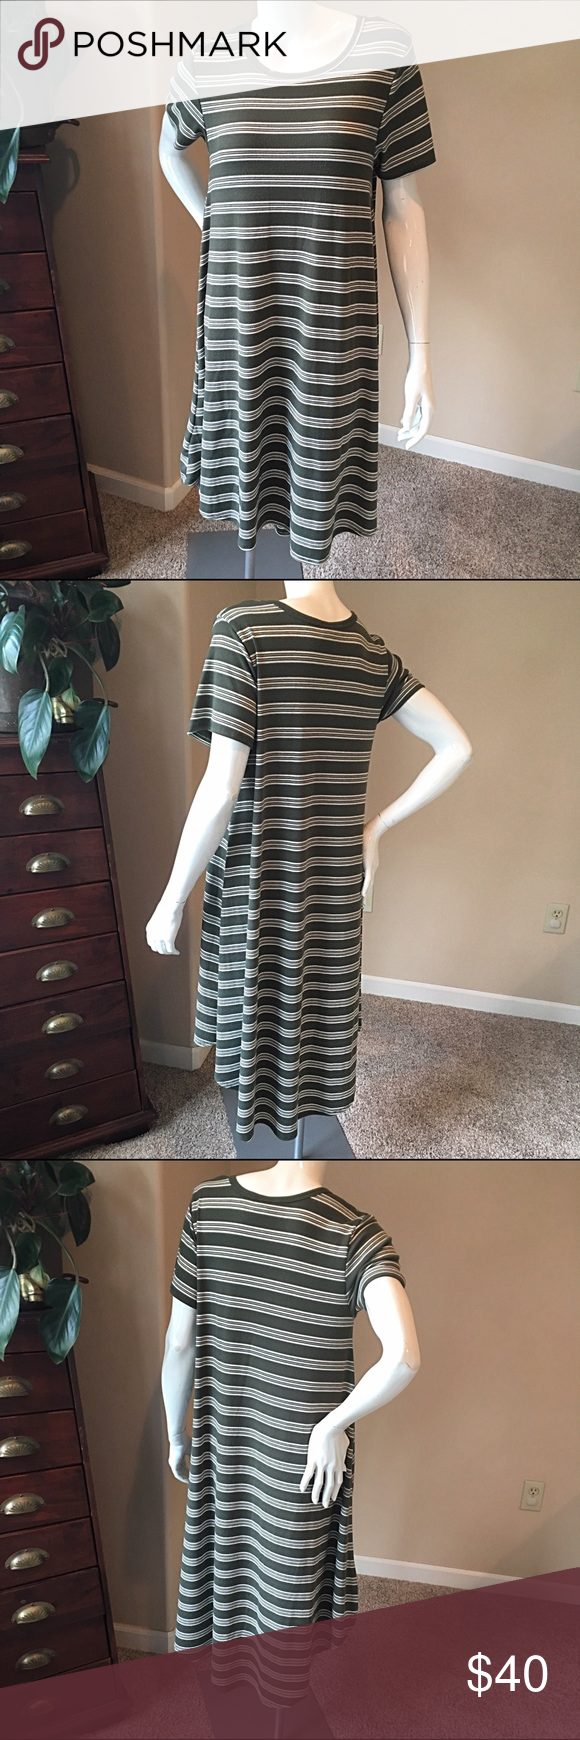 """LuLaroe S Carly green striped dress LuLaroe S Carly green striped dress. Dress is in good condition slight piling near underarm see pic. We all want a cute dress that lets us breathe and move easier, so we are excited about the Carly - a swing dress that flatters the best parts of a feminine physique while being flowy and breezy everywhere else. The Carly has a flattering high-low hemline, and cool open sleeves. Measurements bust 18"""", length 40"""". LuLaRoe Dresses Midi"""